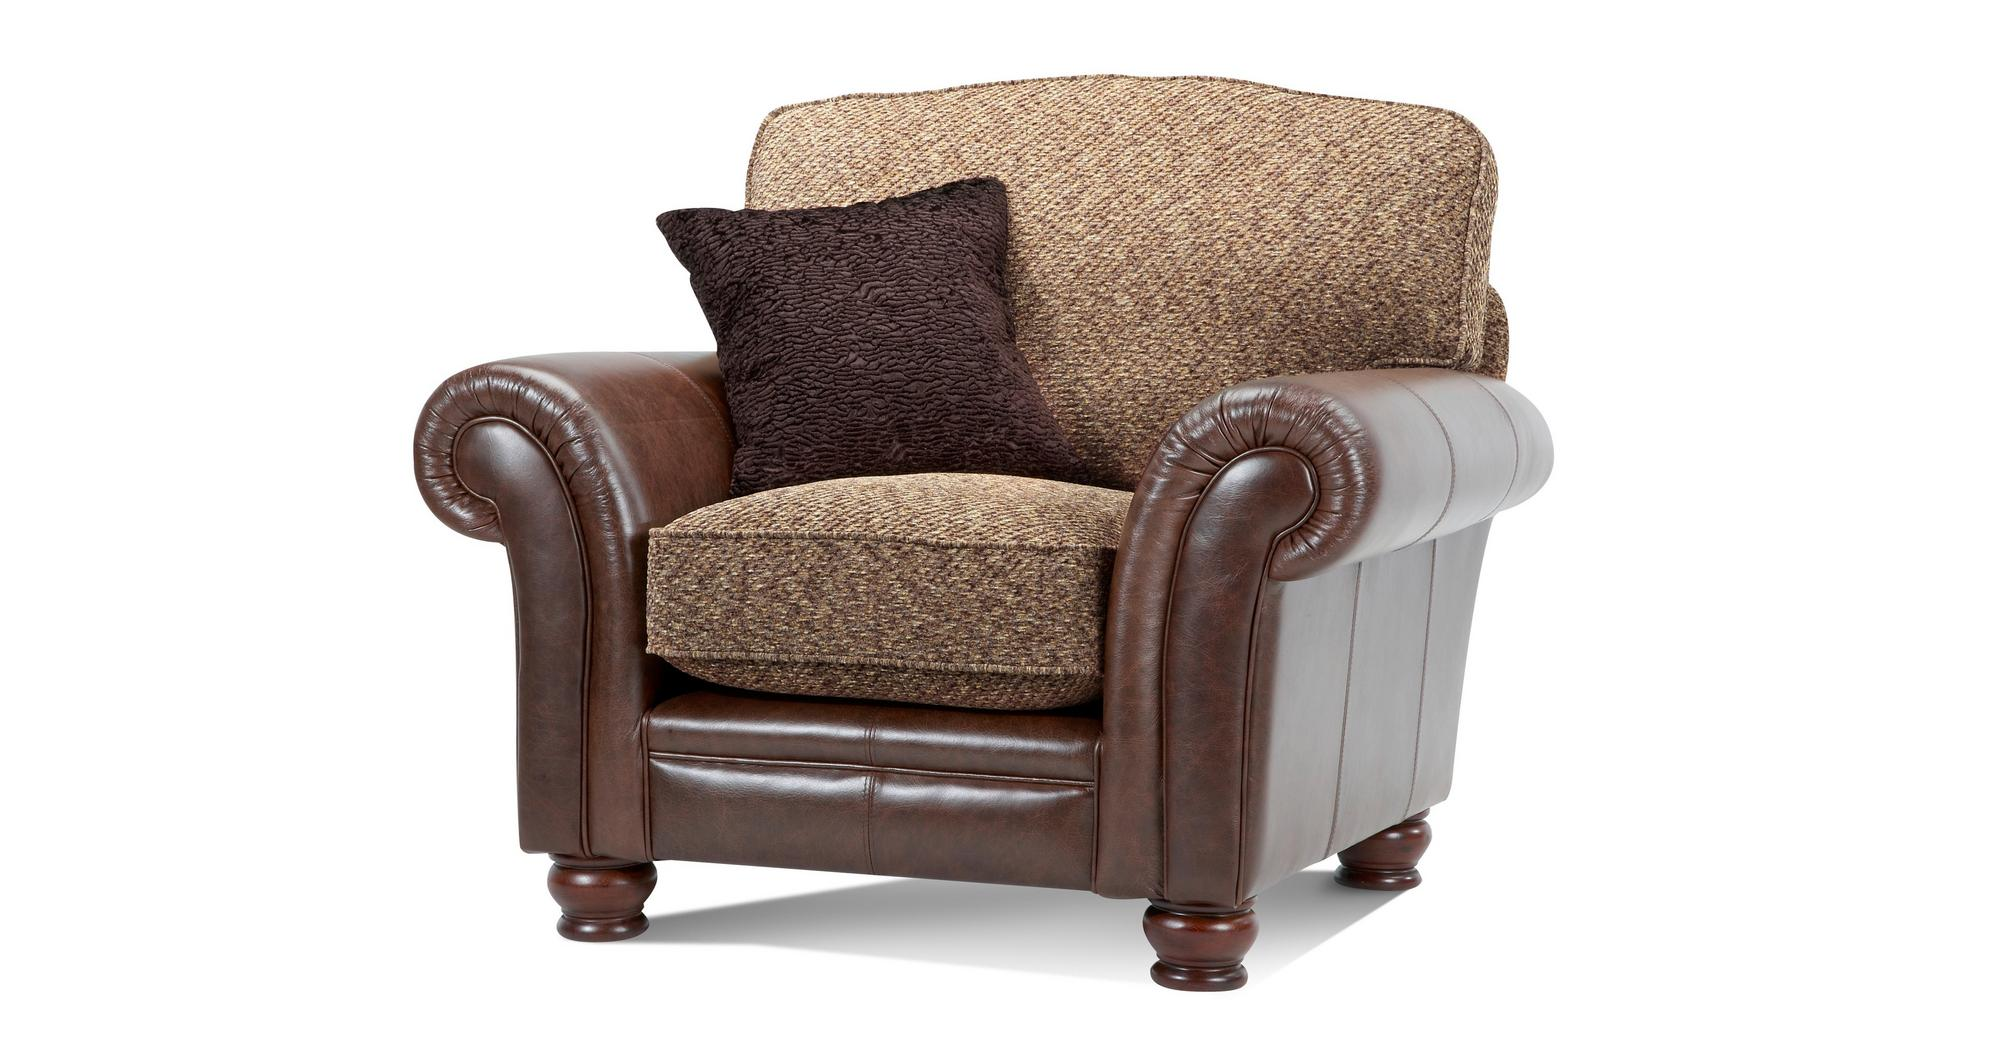 Terrific Dfs Perez Brown Fabric 4 Seater 2 Seater Armchair Bralicious Painted Fabric Chair Ideas Braliciousco